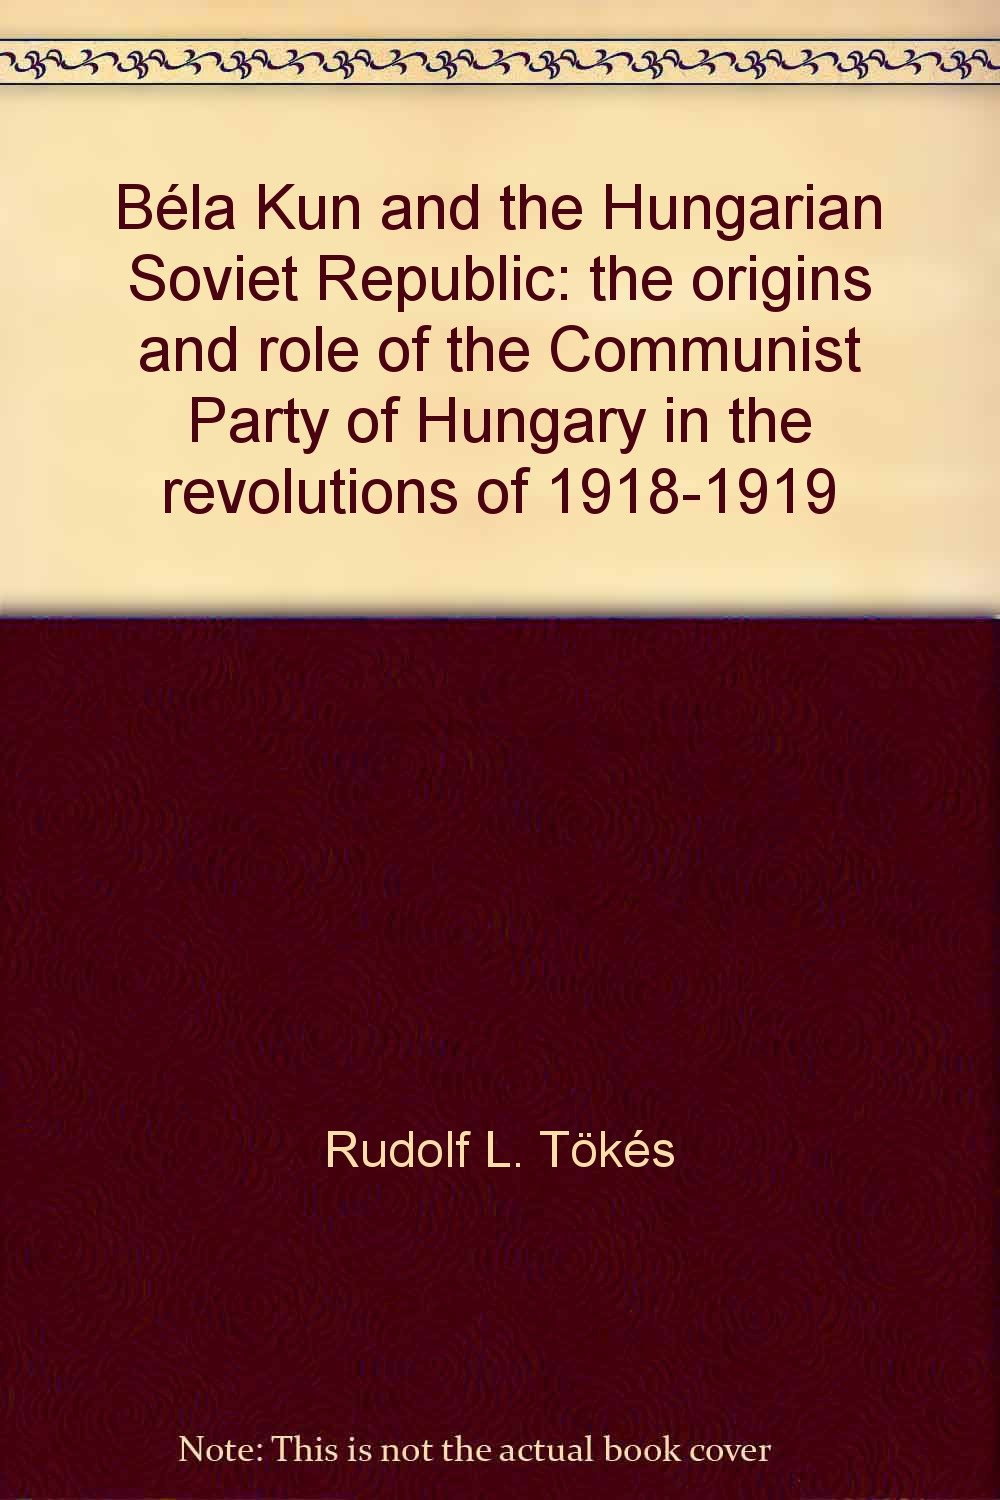 bela-kun-and-the-hungarian-soviet-republic-the-origins-and-role-of-the-communist-party-of-hungary-in-the-revolutions-of-1918-1919-hoover-institution-publications